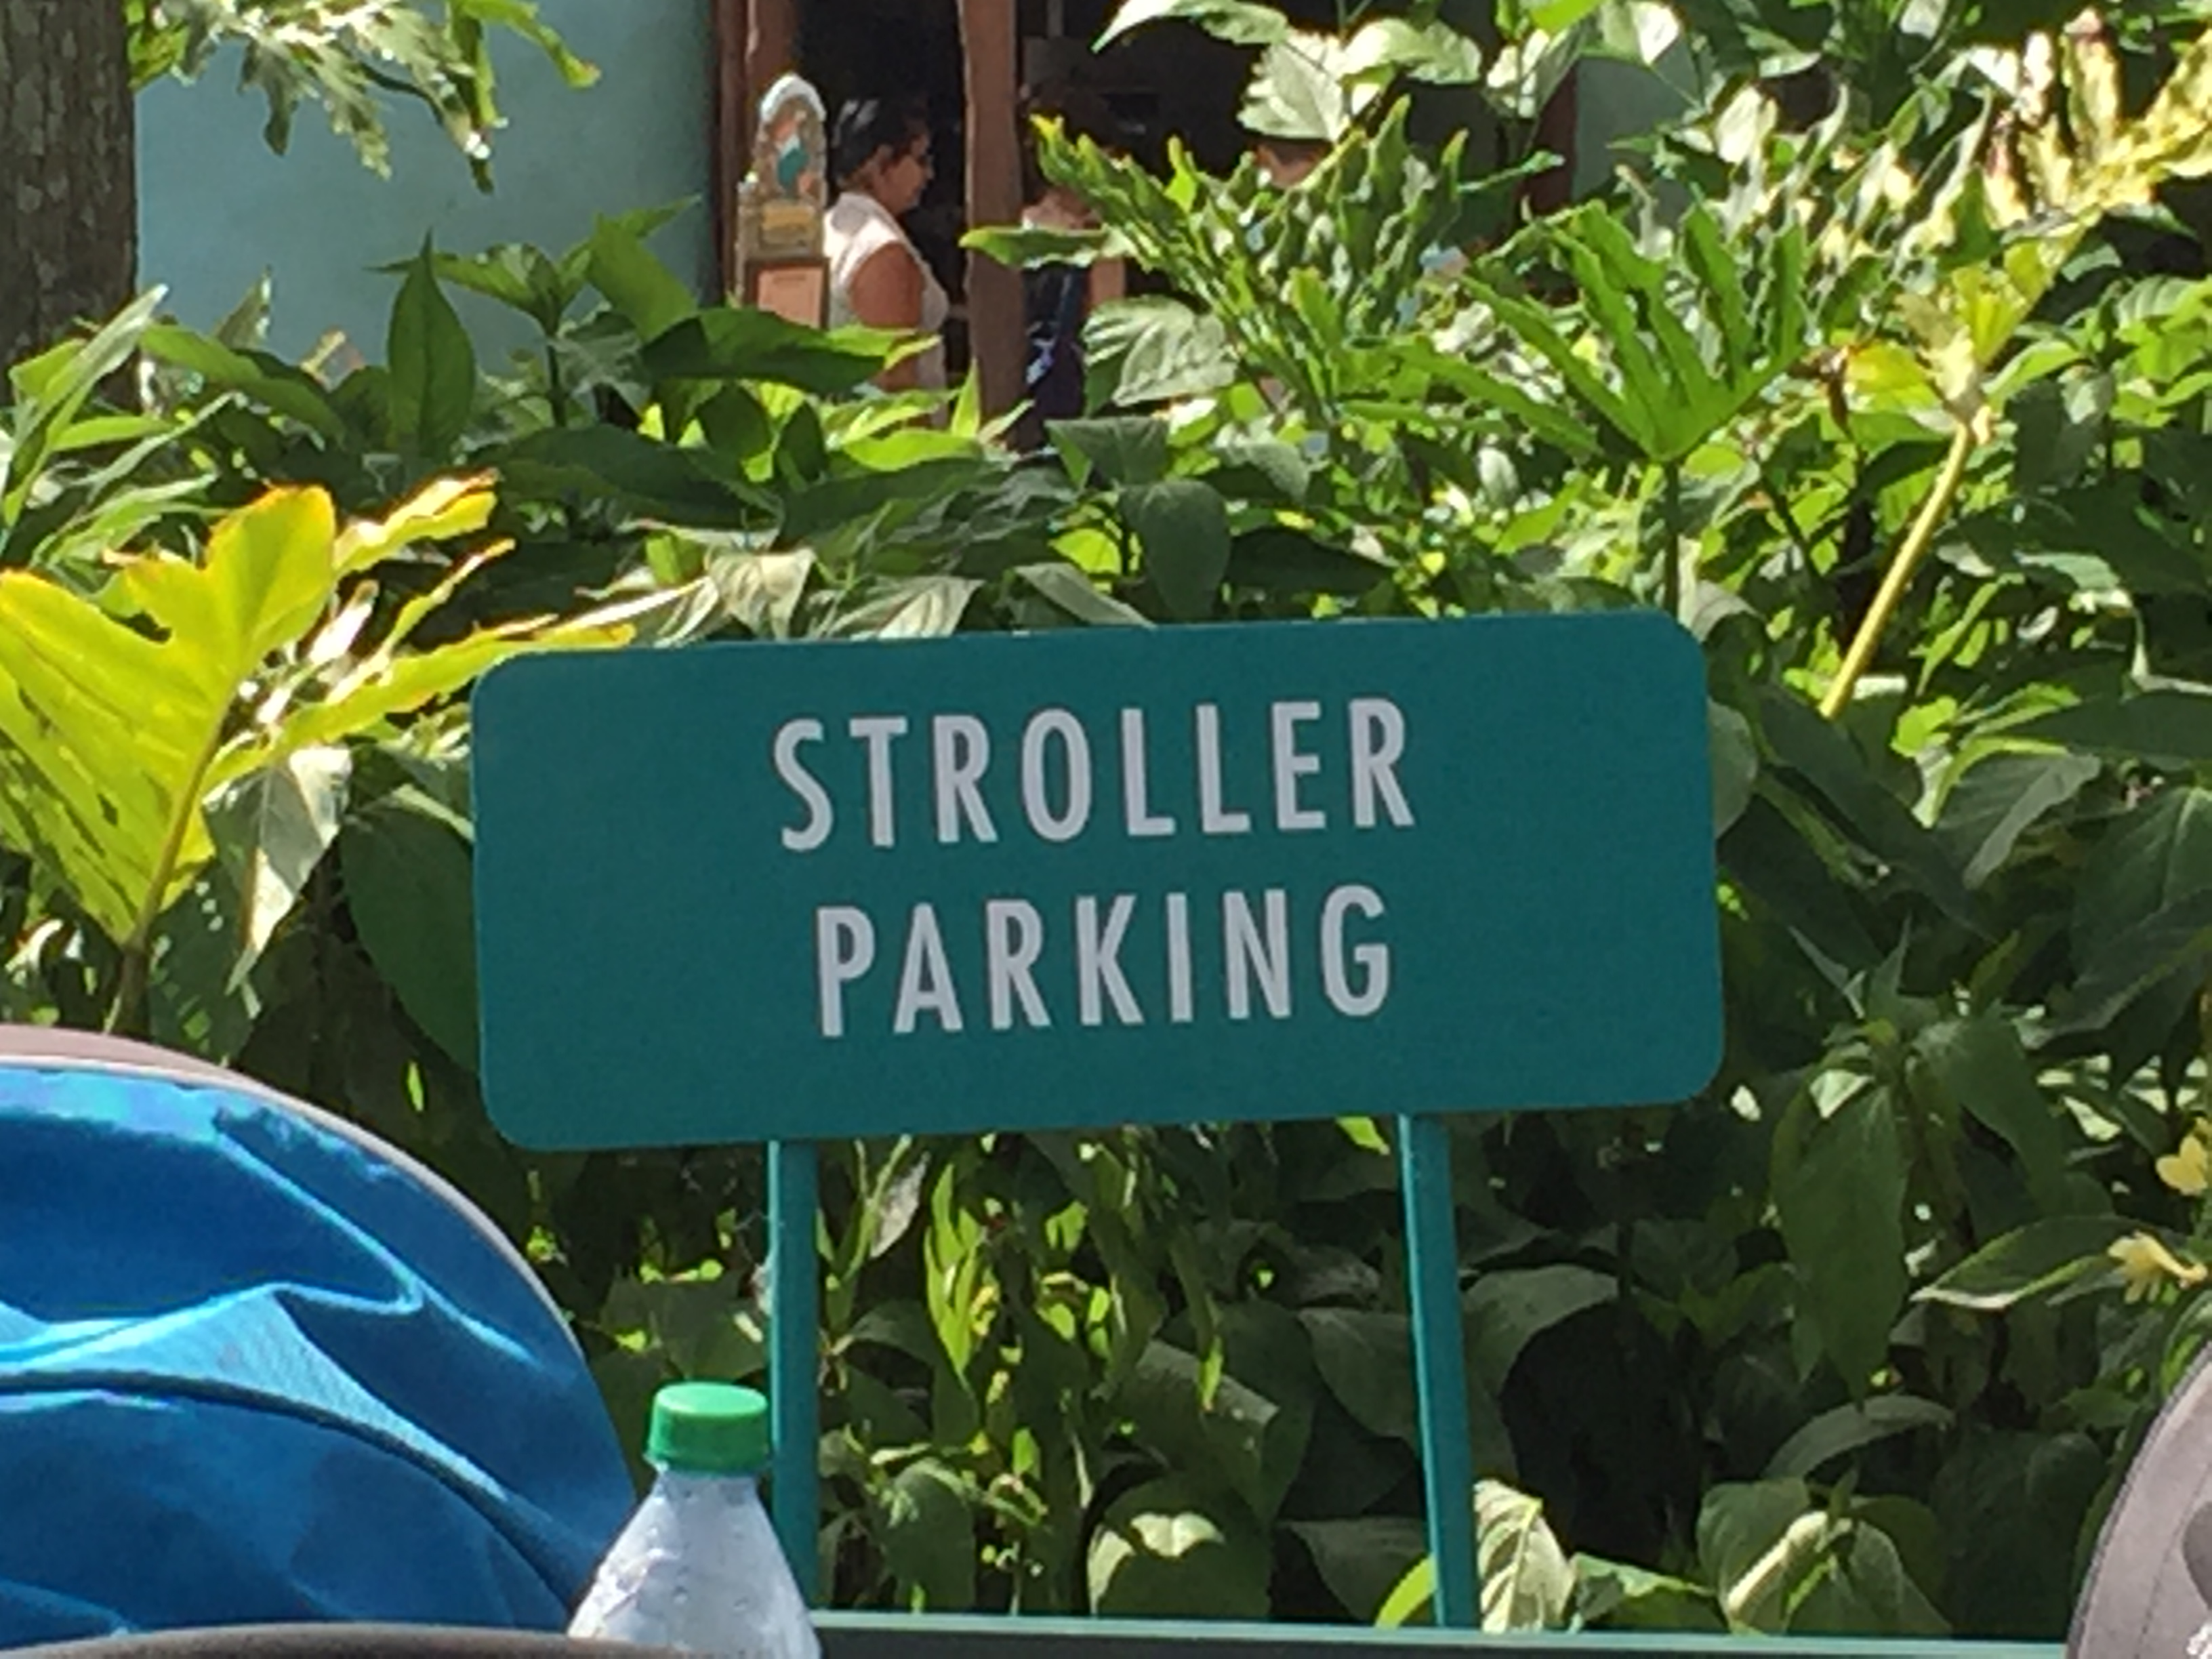 Strollers-A necessary evil